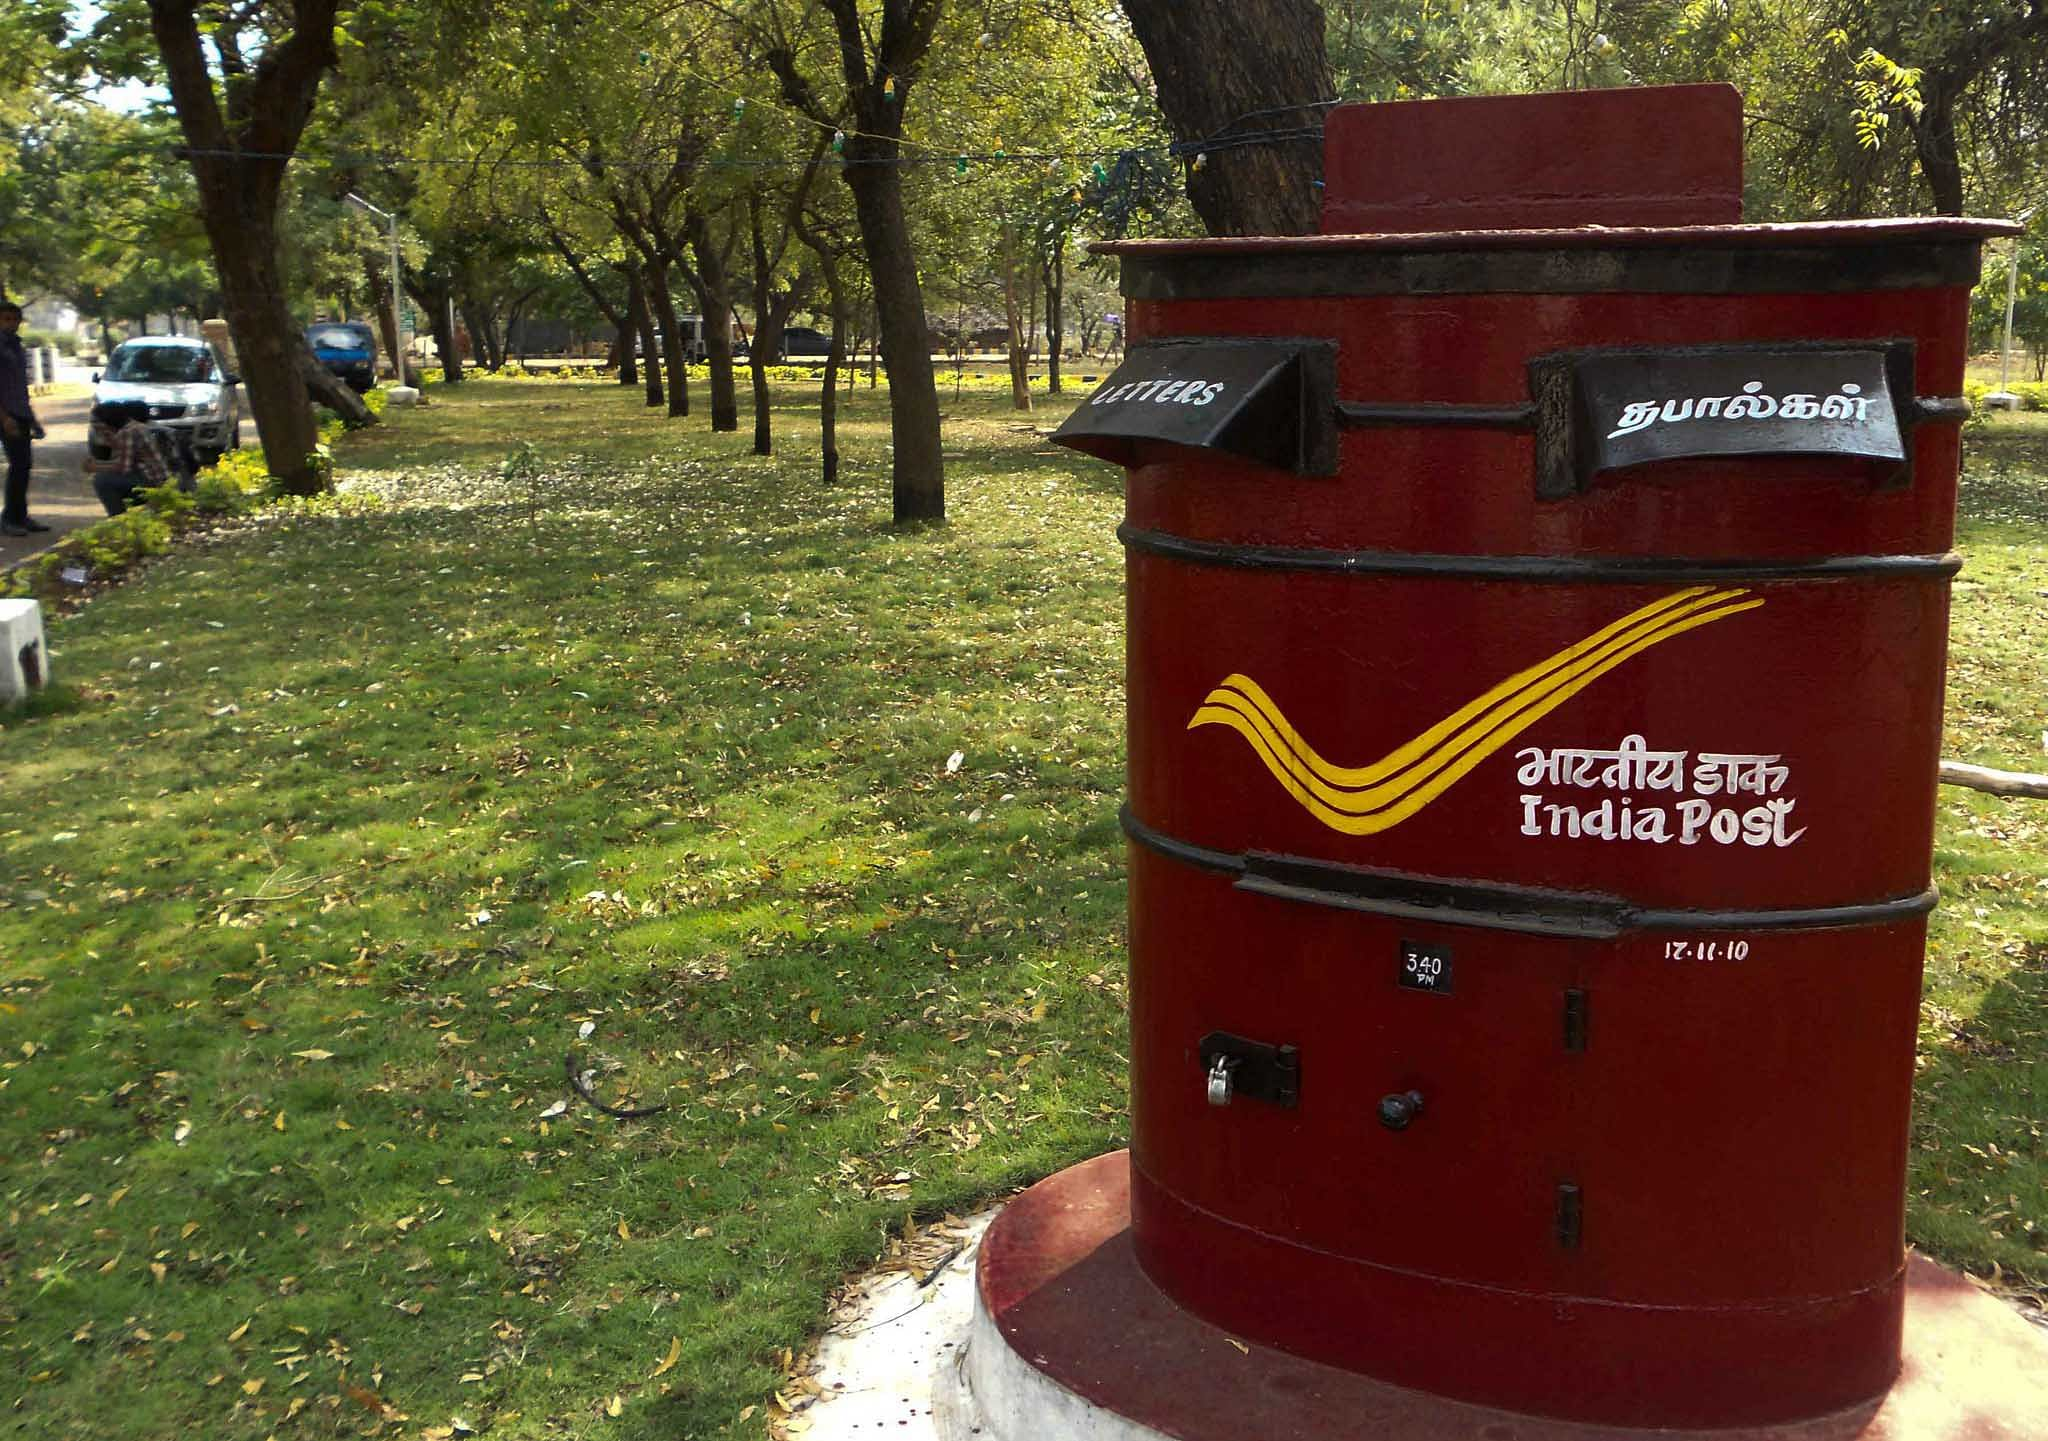 The_Indian_Postbox